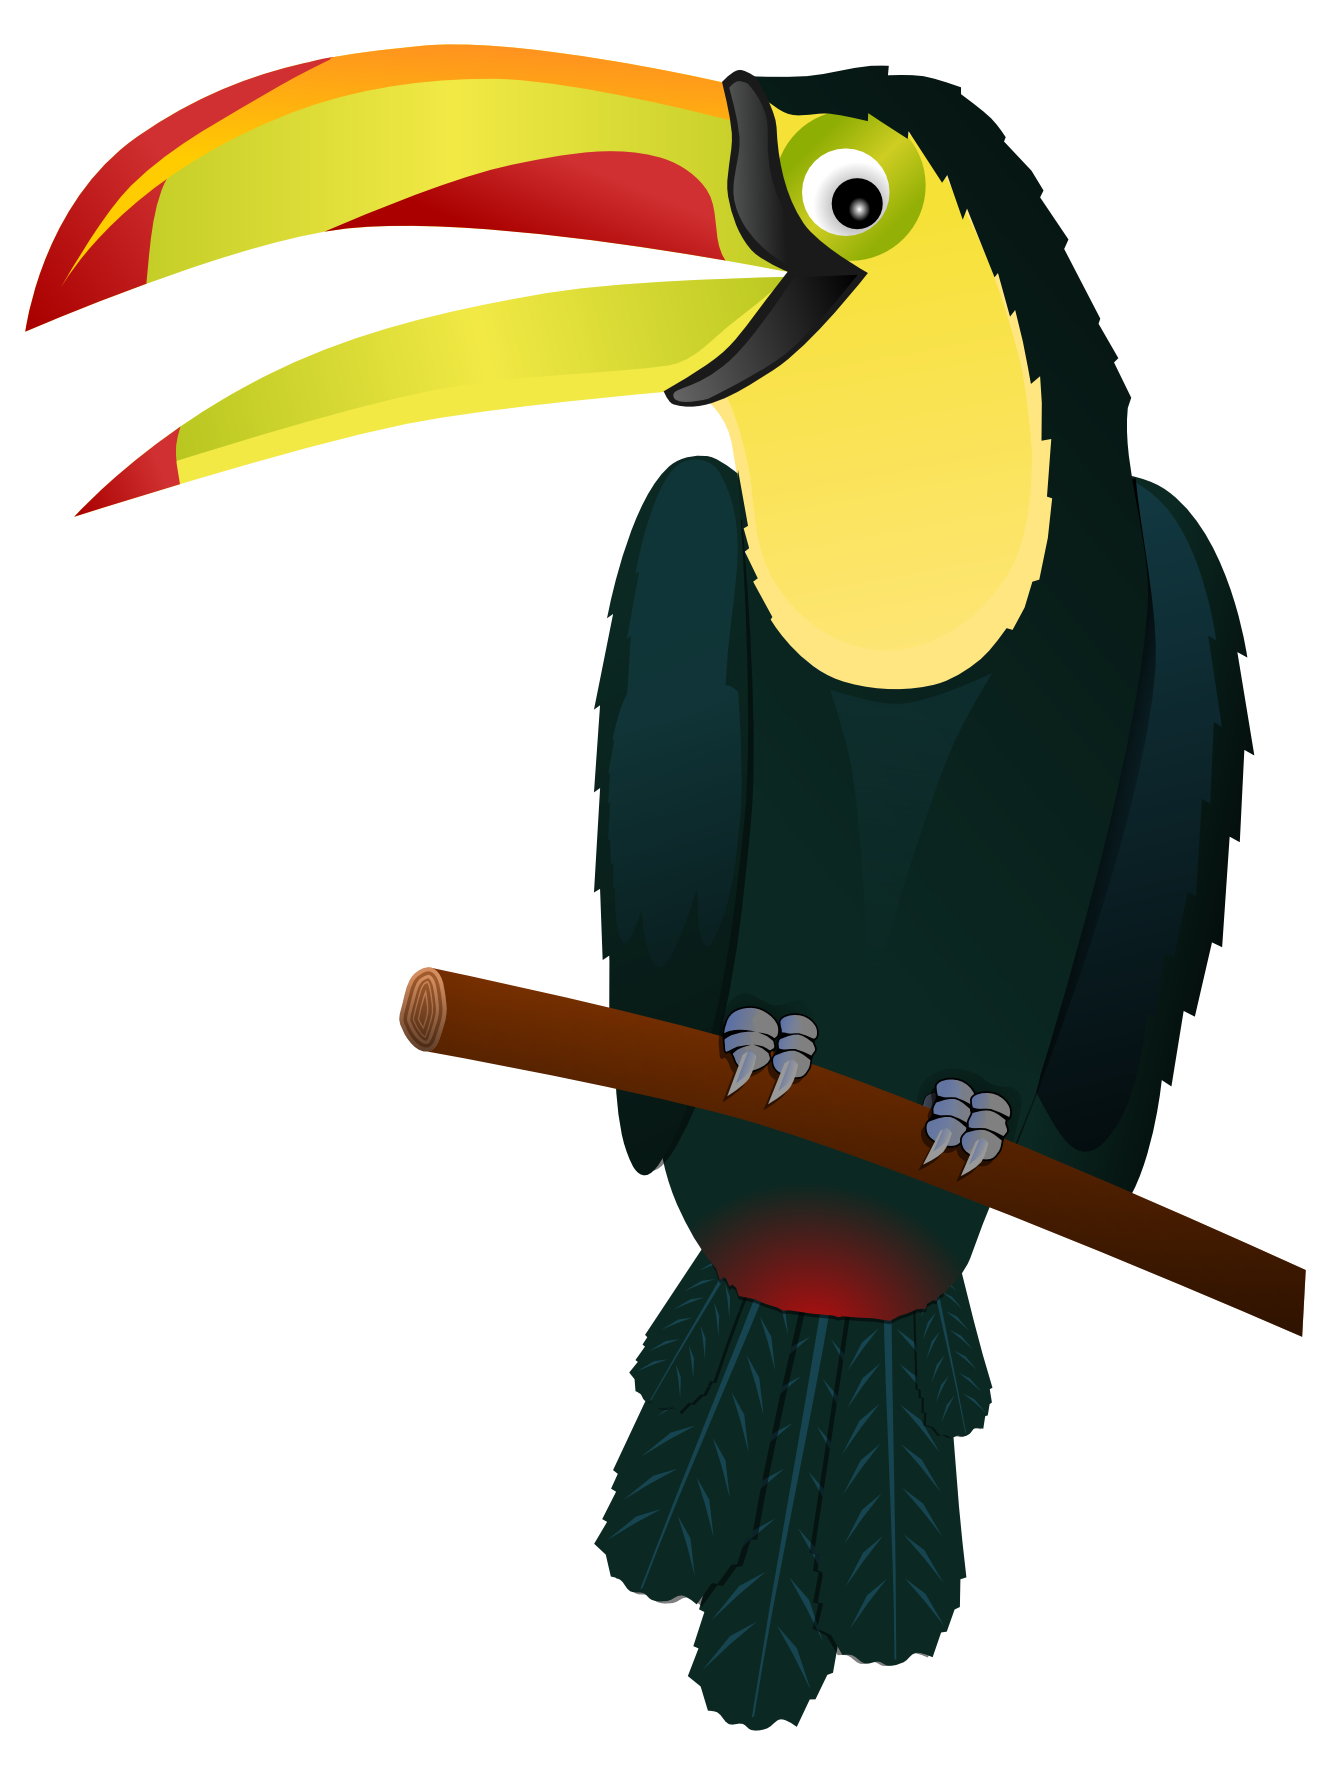 Toucan clipart Images And Black Toucan White